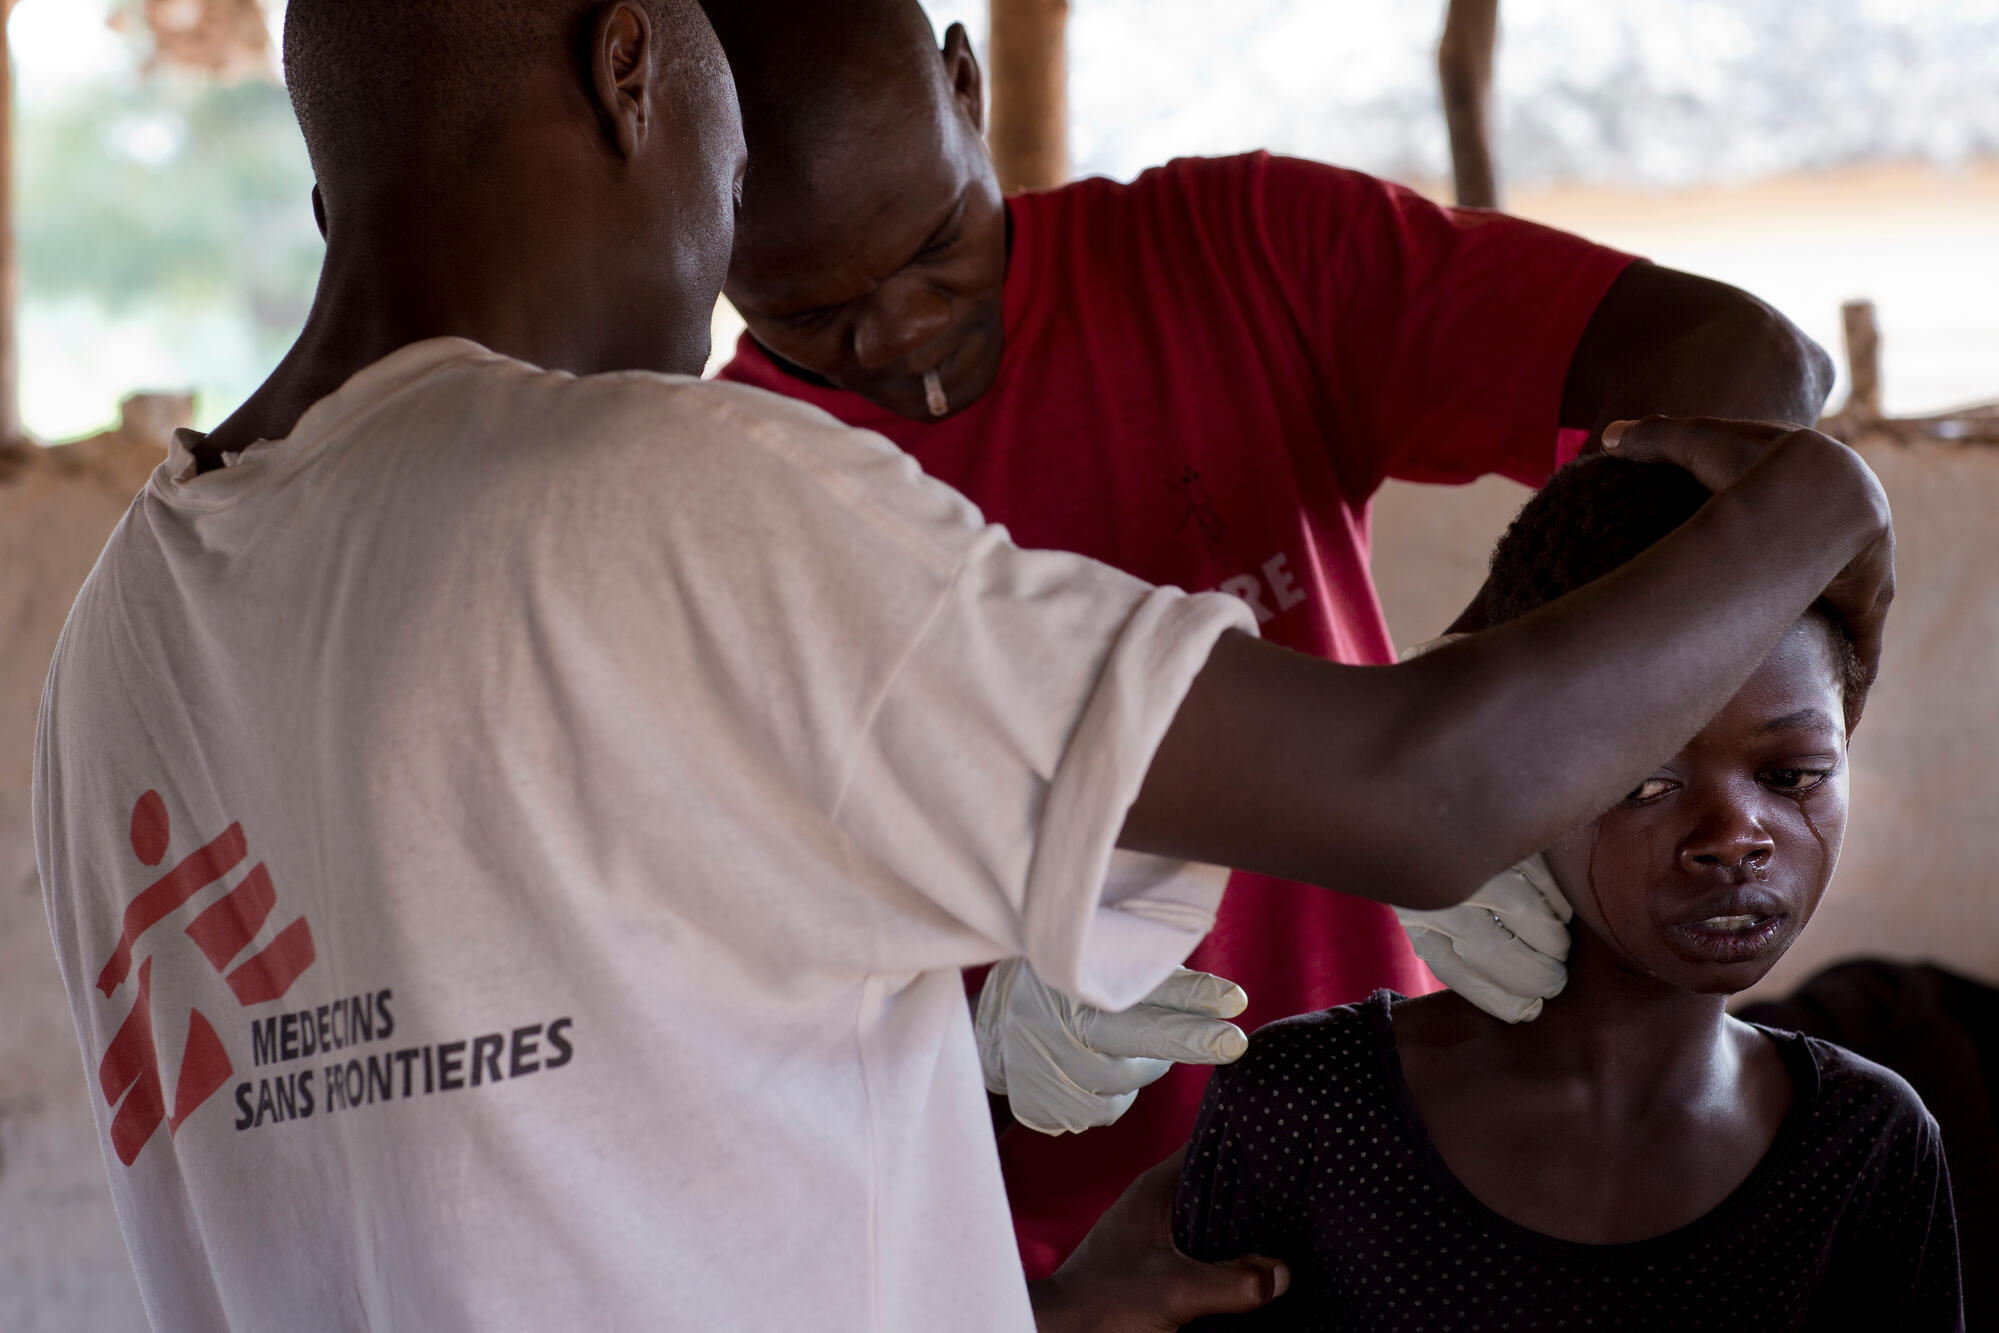 MSF staff run tests to diagnose sleeping sickness in DRC